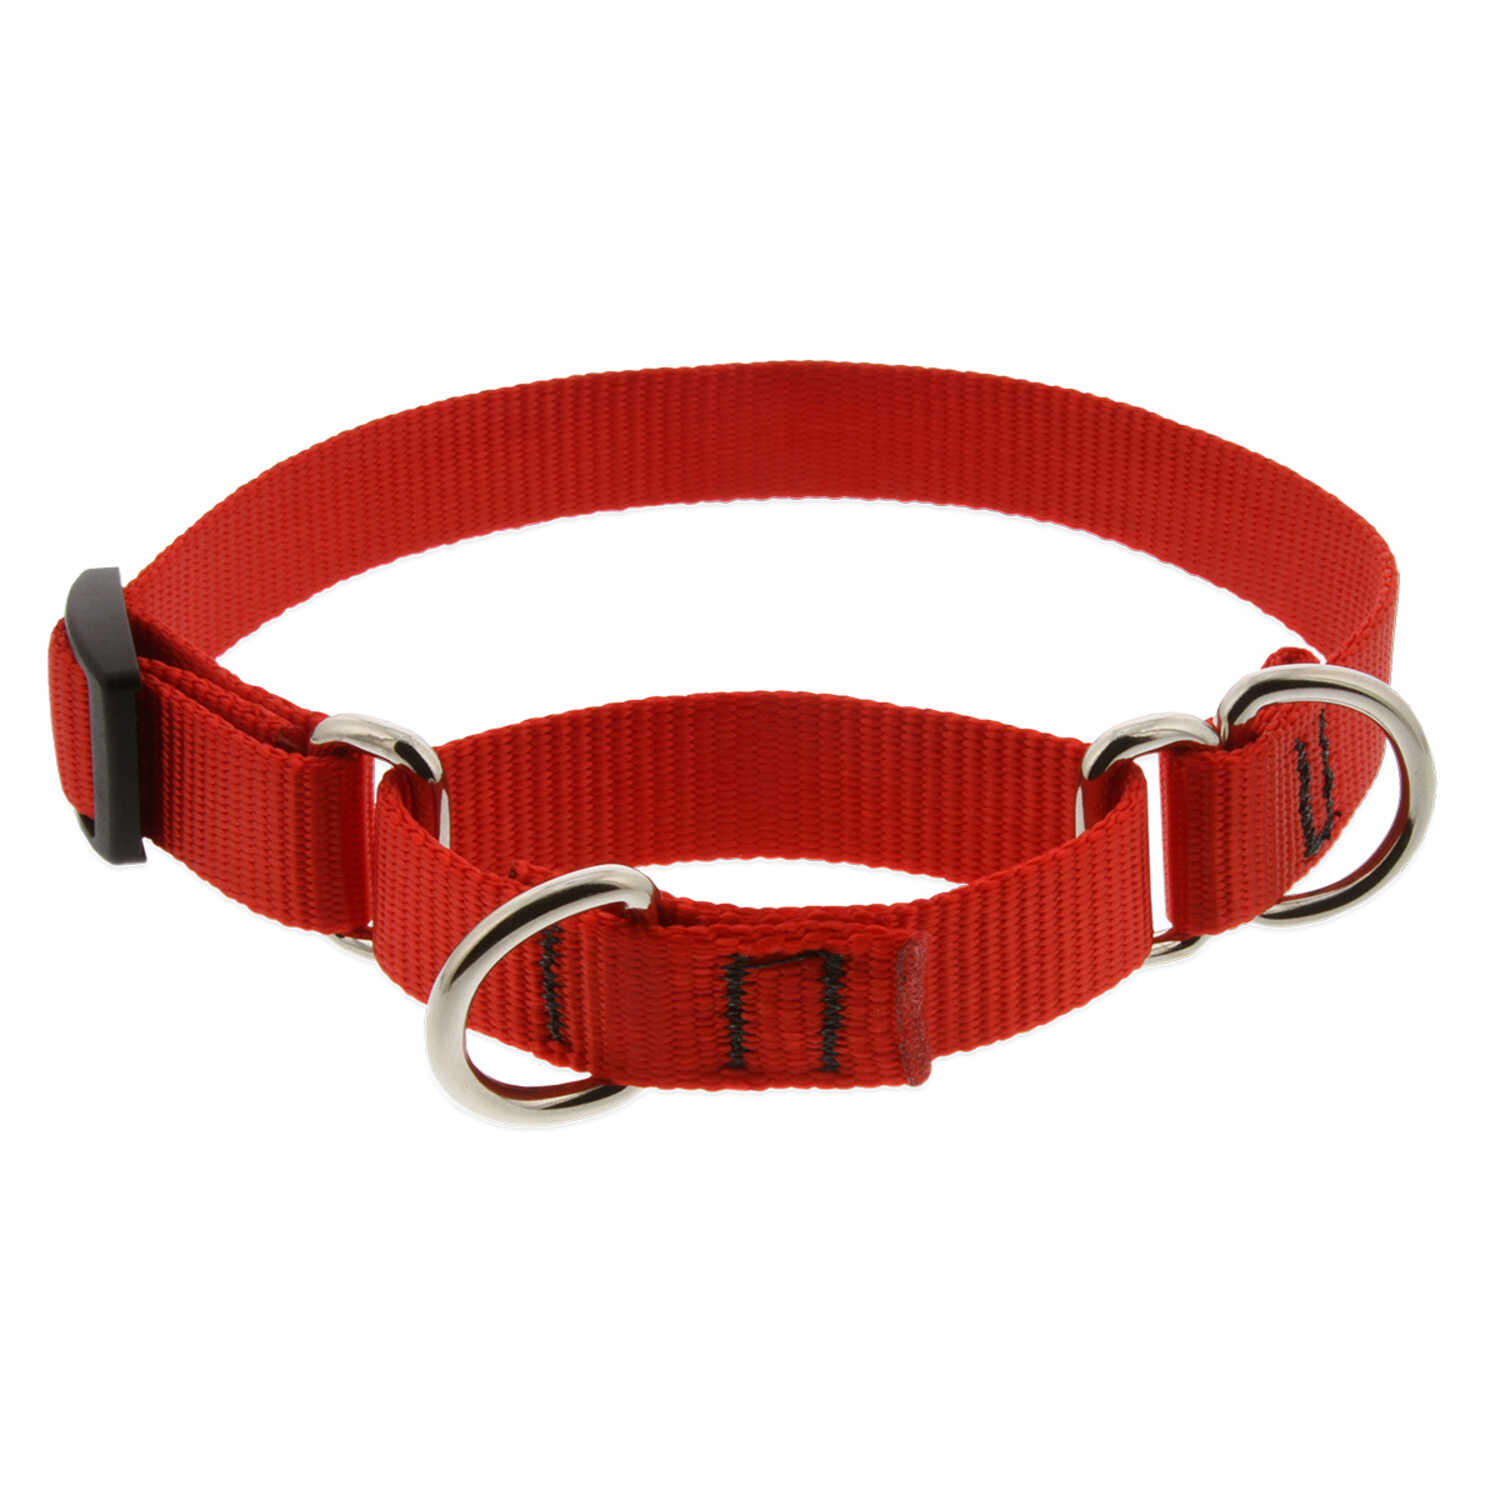 Lupine Pet  Basic Solids  Red  Red  Nylon  Dog  Collar